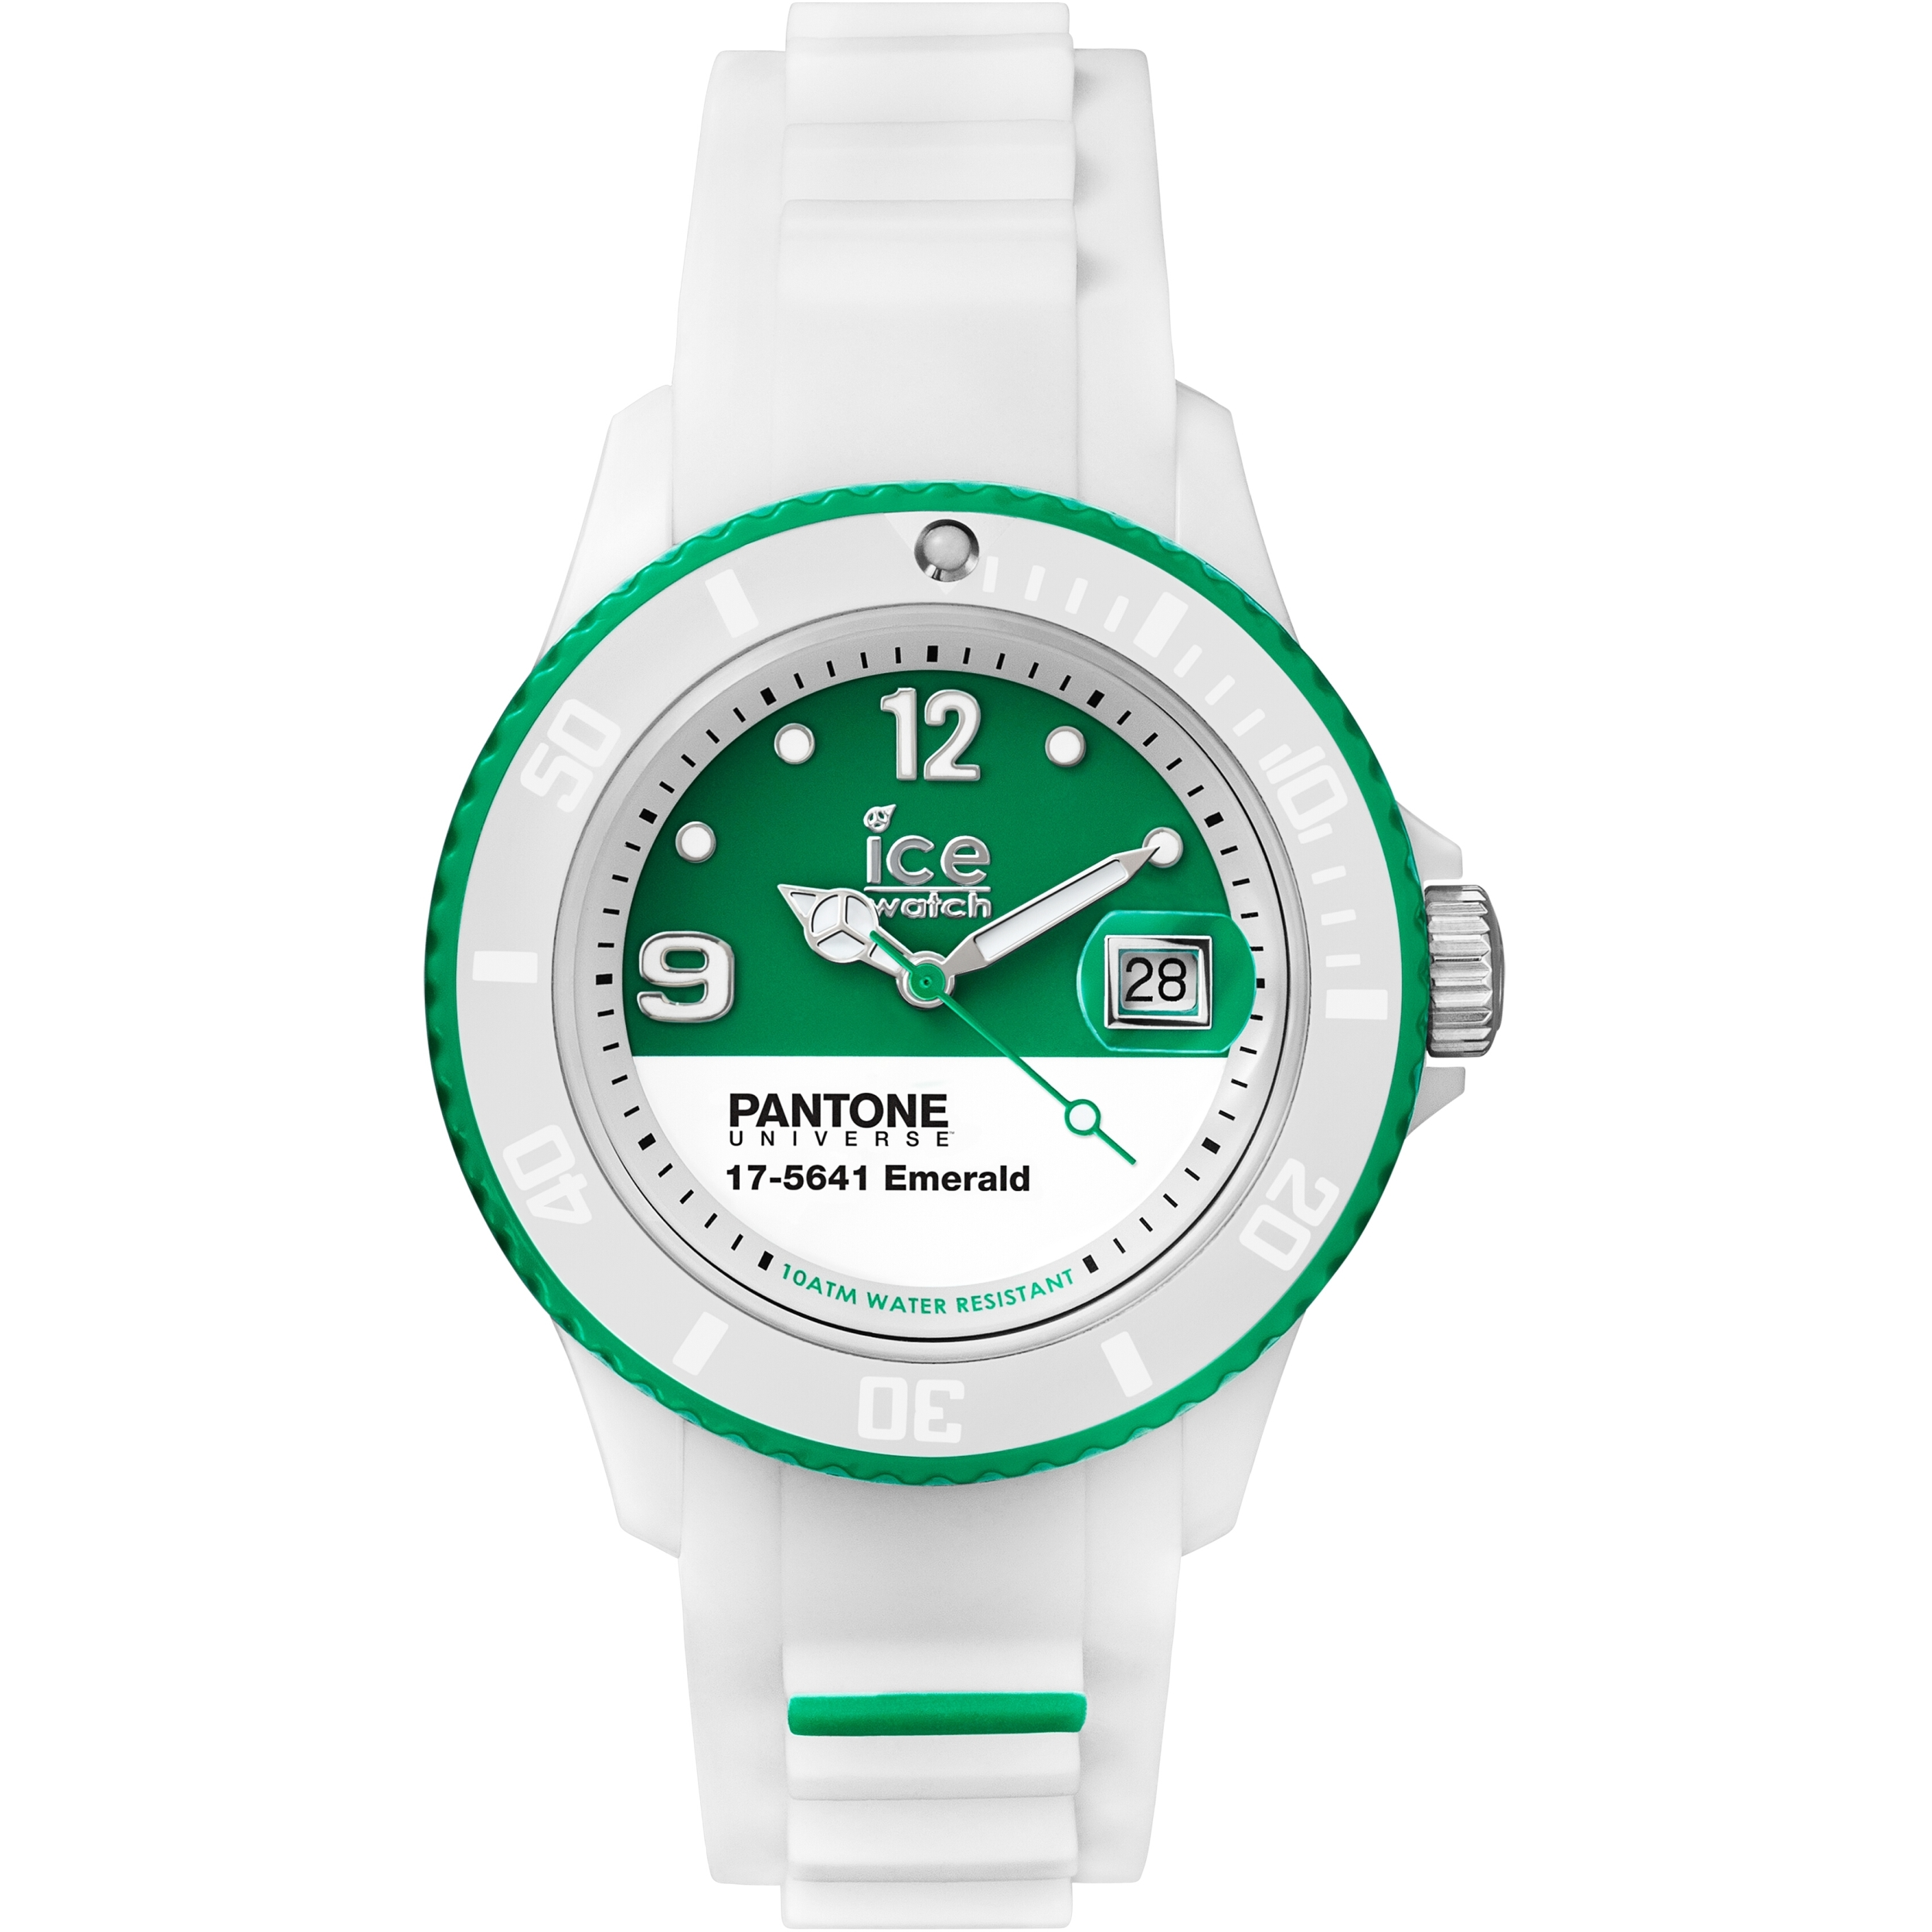 wristwatch emerald hgk malachite statement s diamond jewels and christie watches an